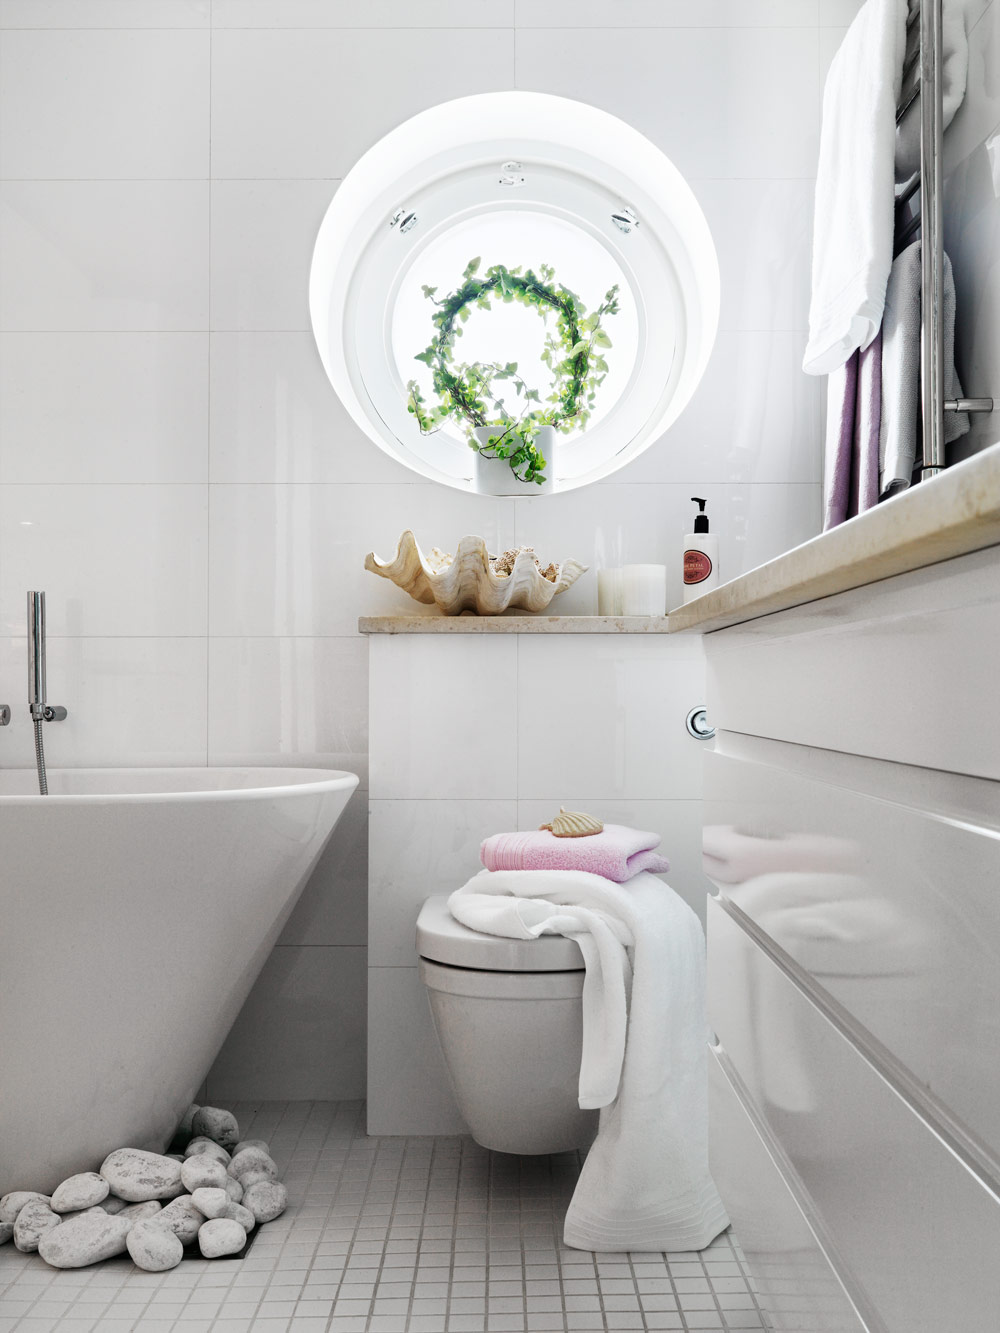 Stylish small bathroom with an unusual decor digsdigs for Pictures of small bathrooms